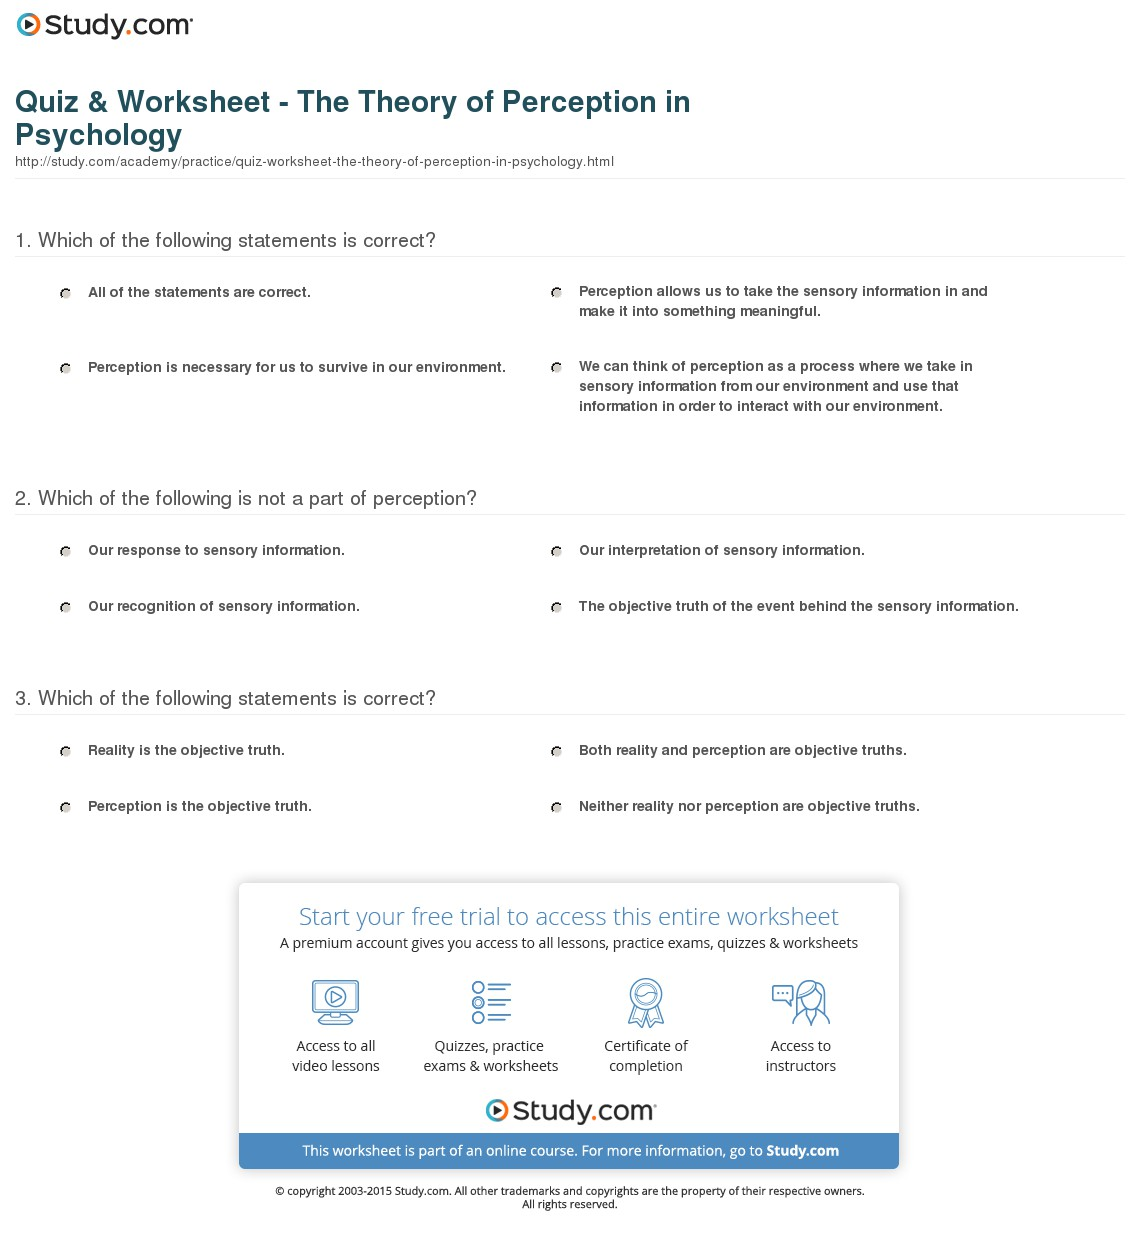 003 Perception Essay Quiz Worksheet The Theory Of In